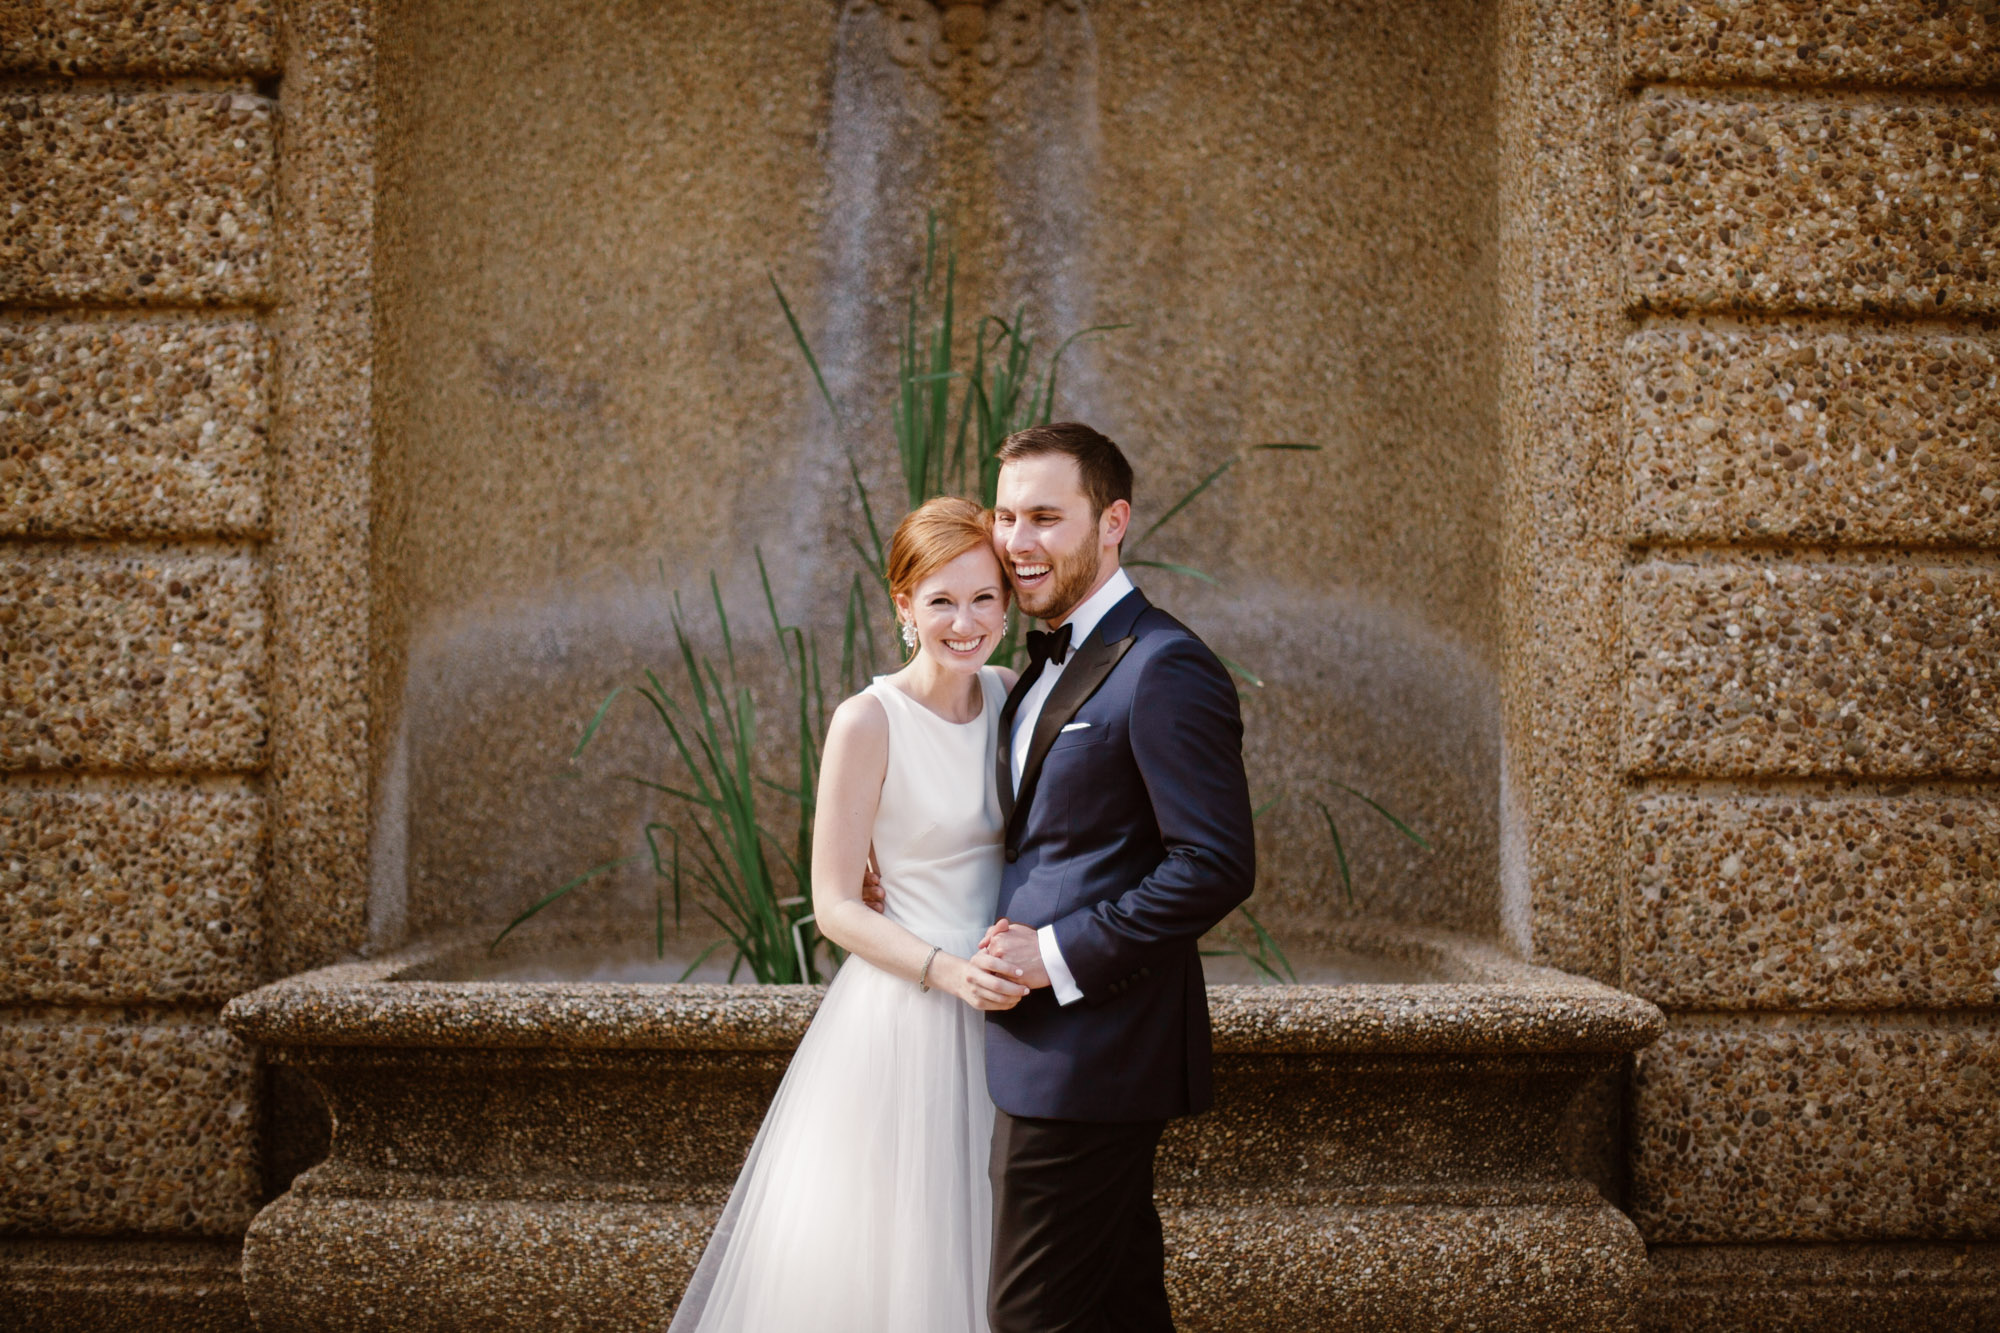 SarahMattozziPhotography-BlackTieWedding-WashingtonDC-31.jpg